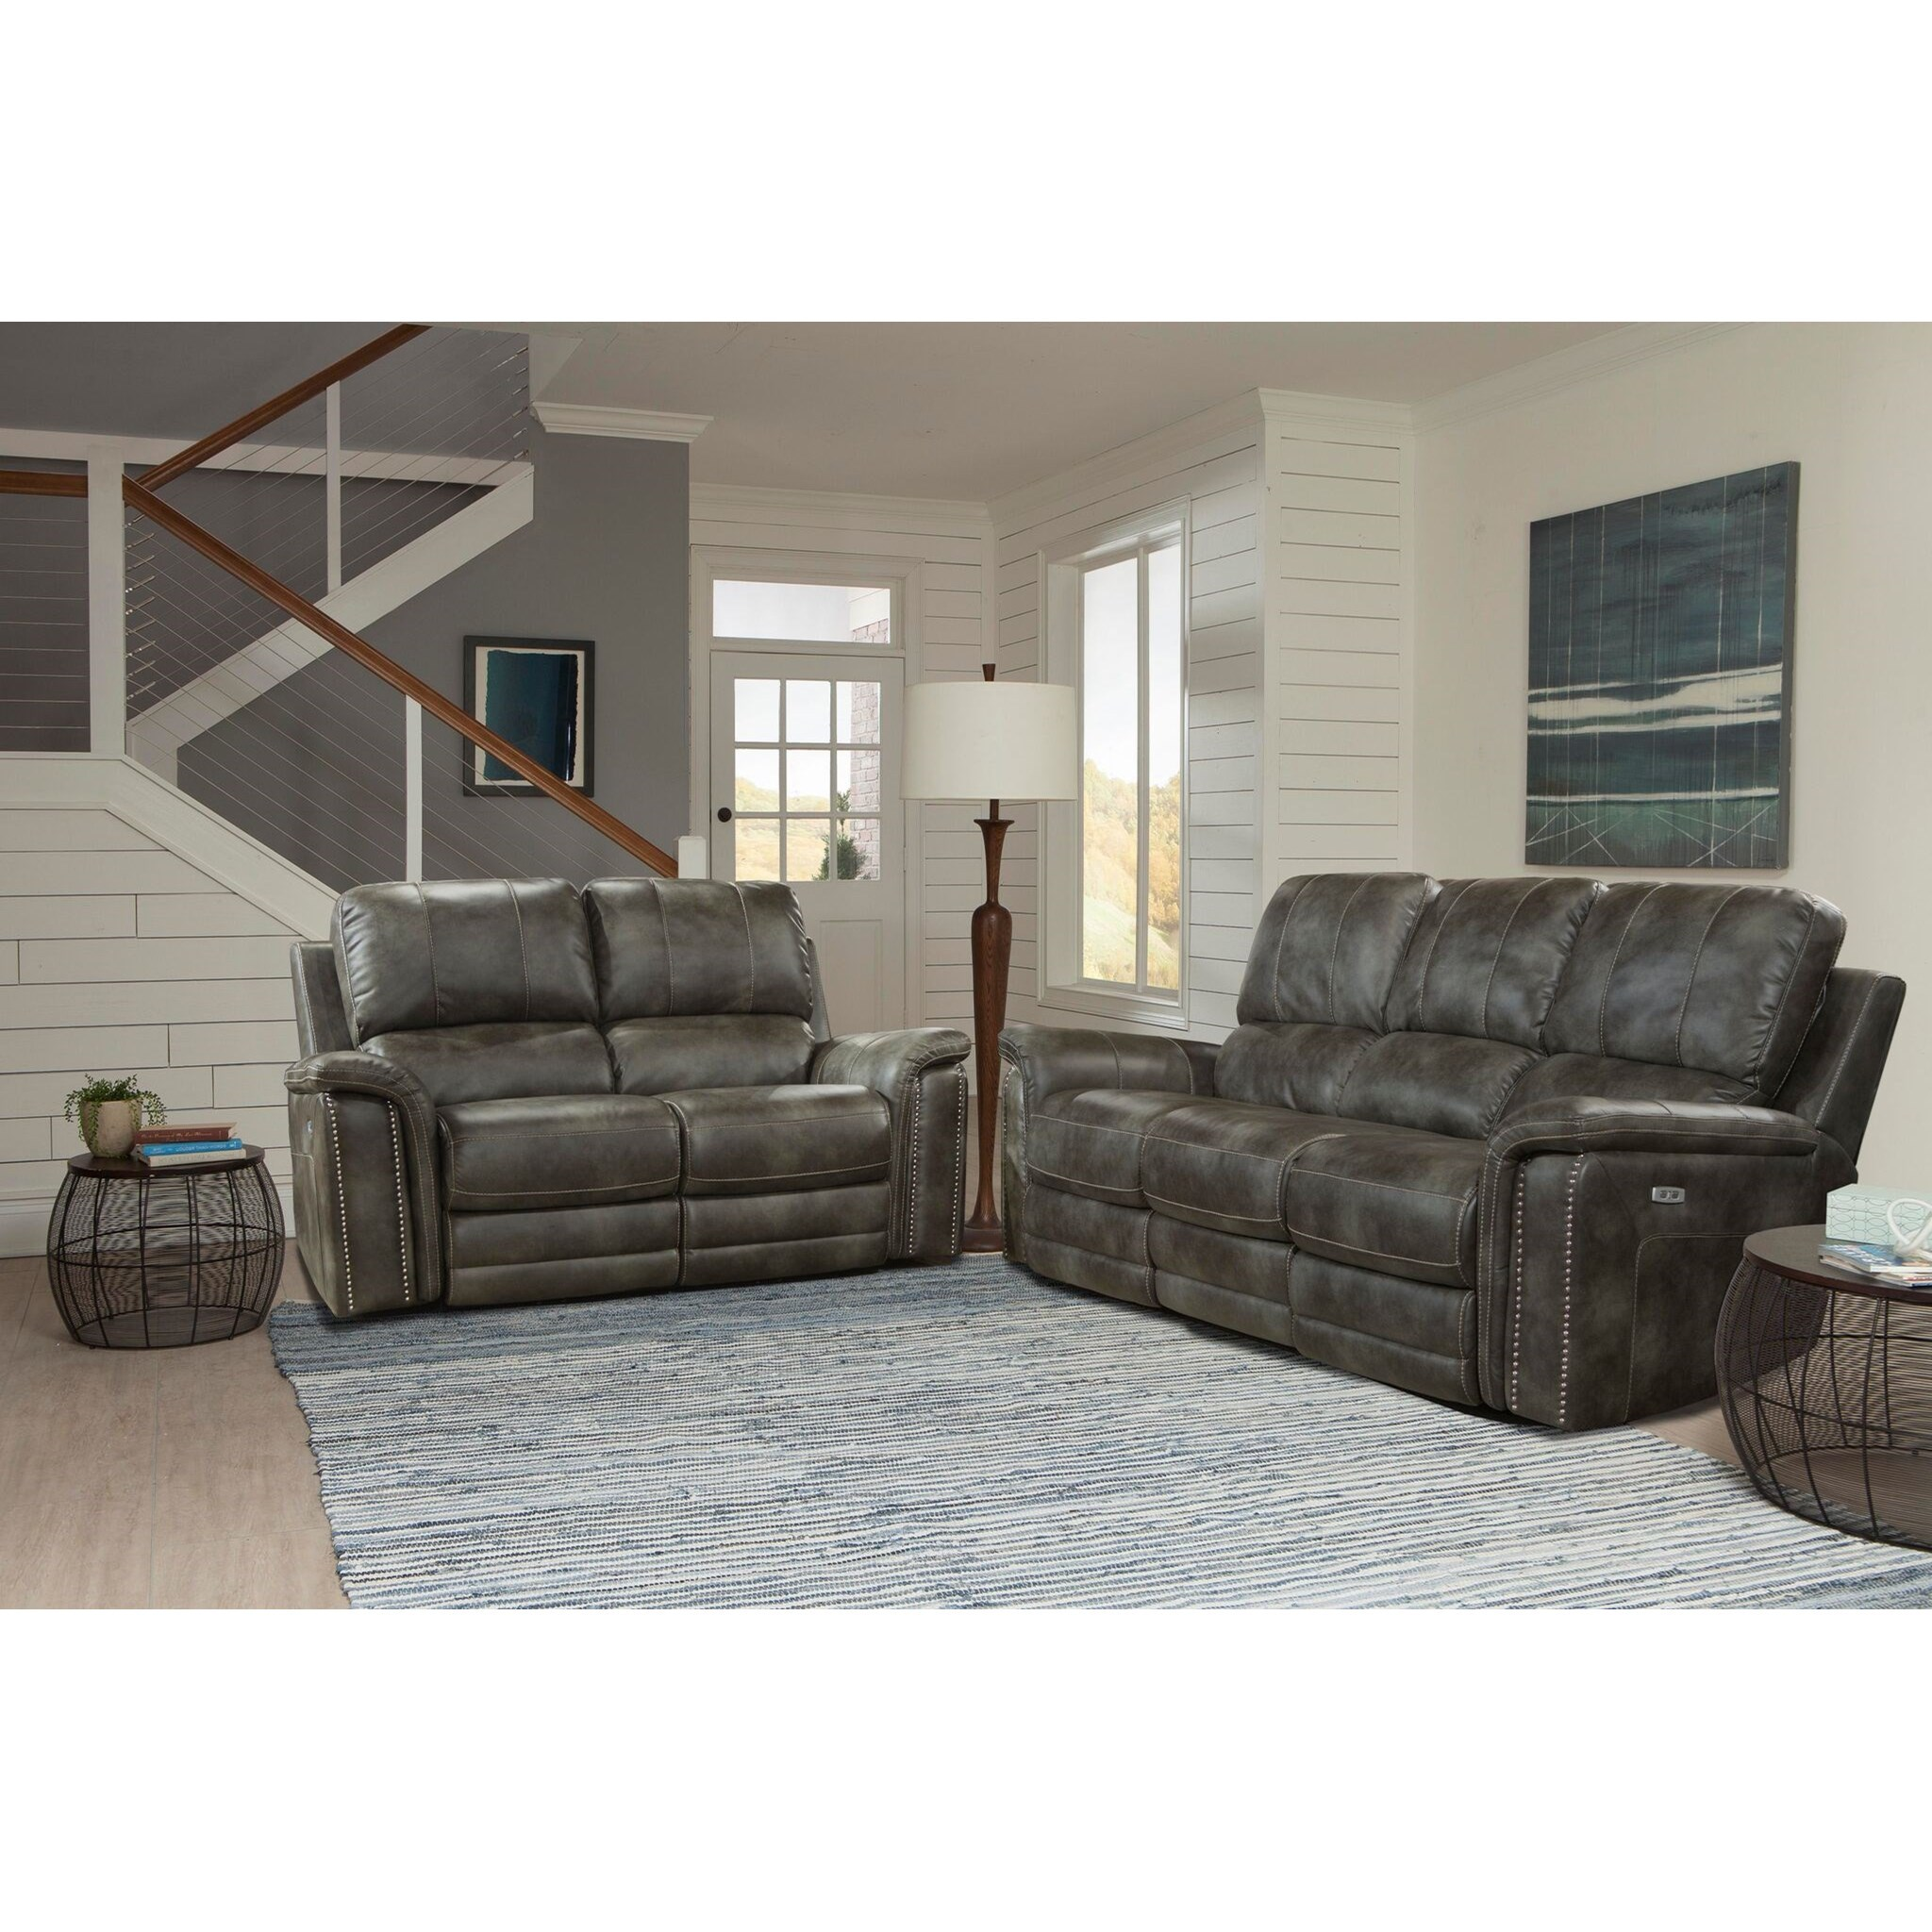 Belize Reclining Living Room Group by Parker Living at Zak's Home